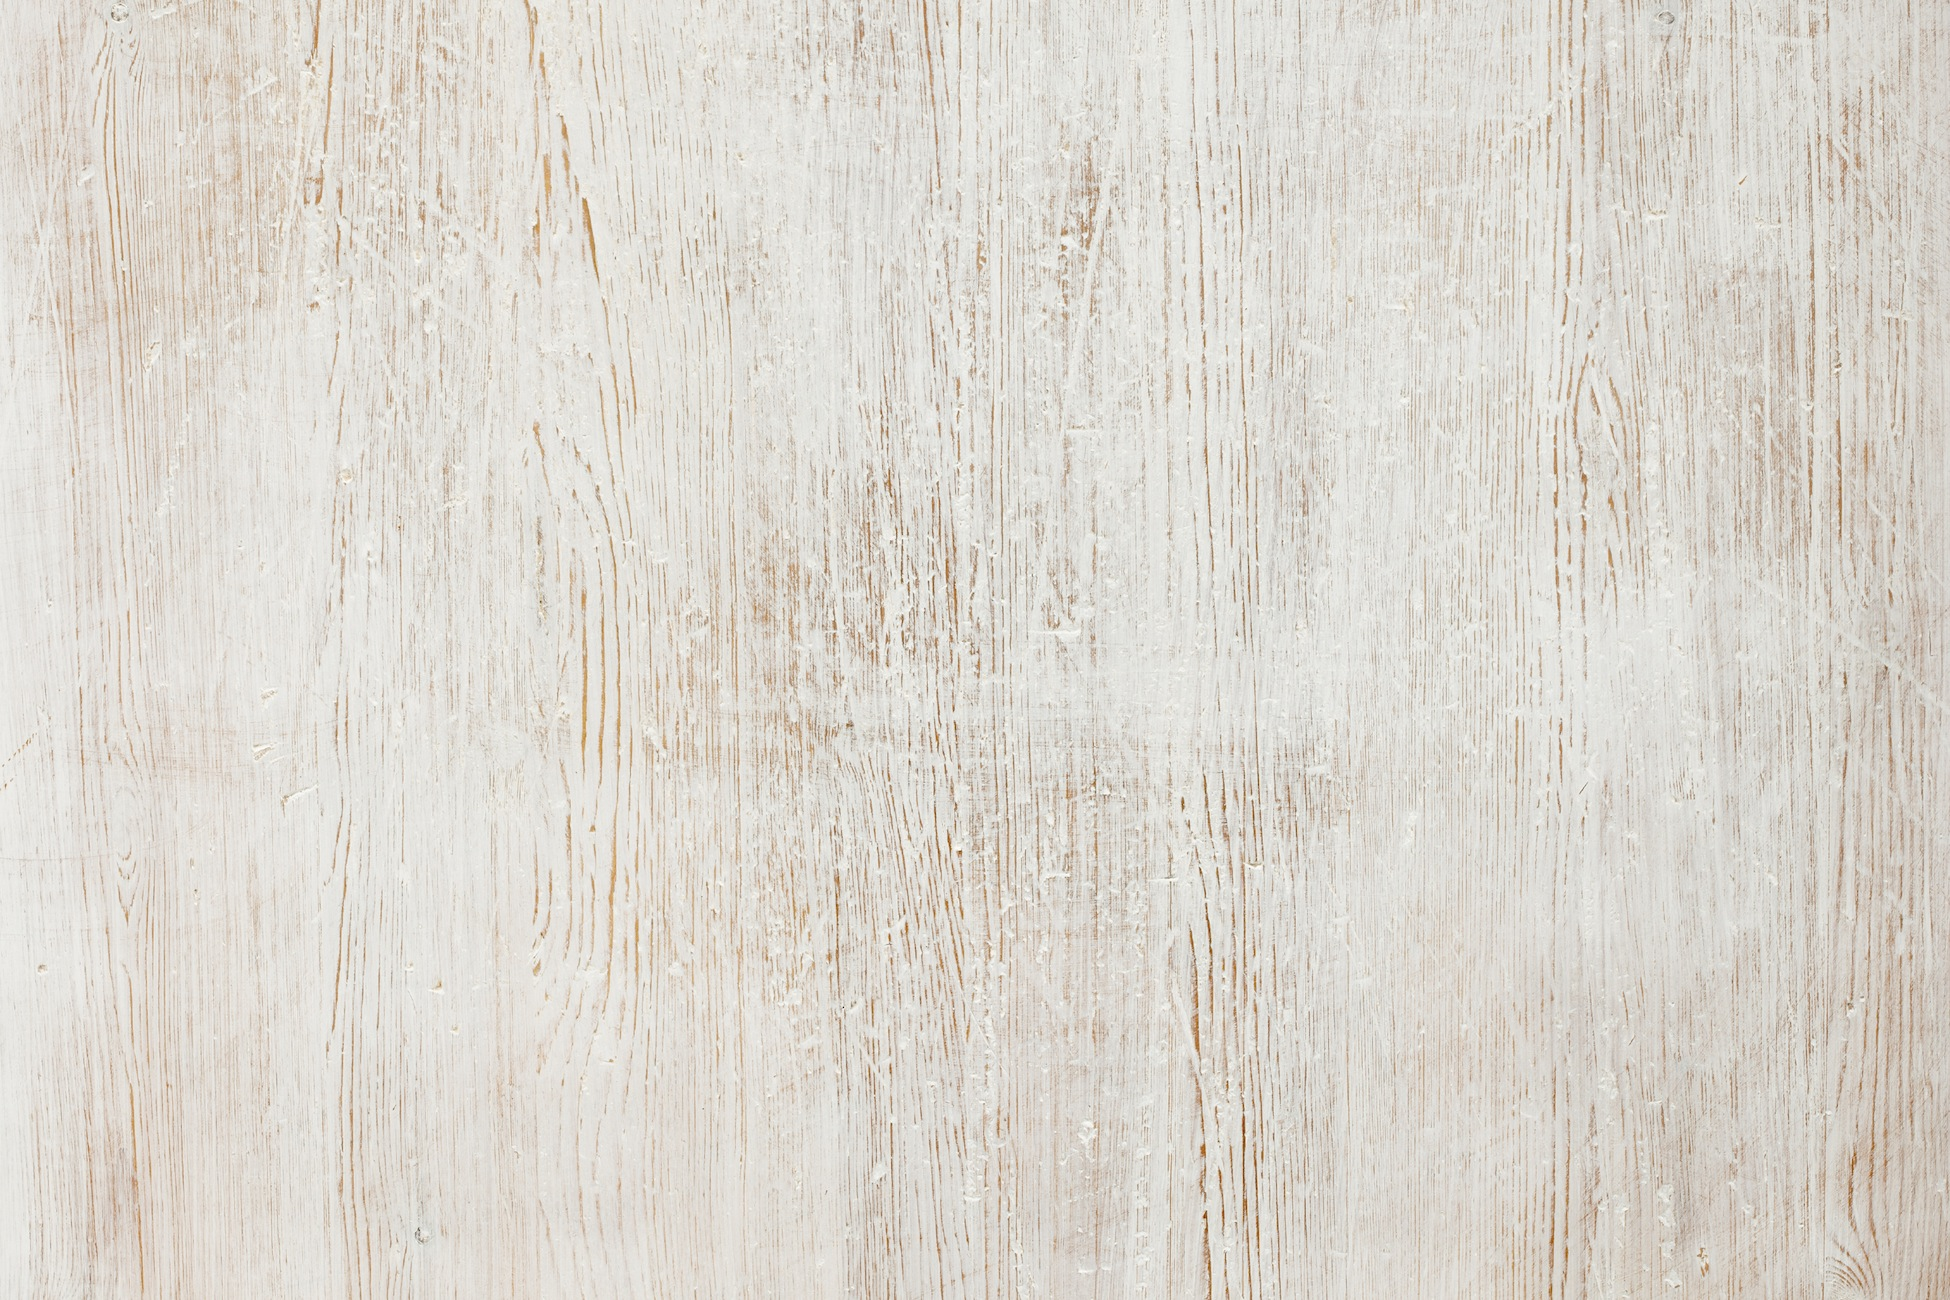 White Wash Wood Design PPT Backgrounds